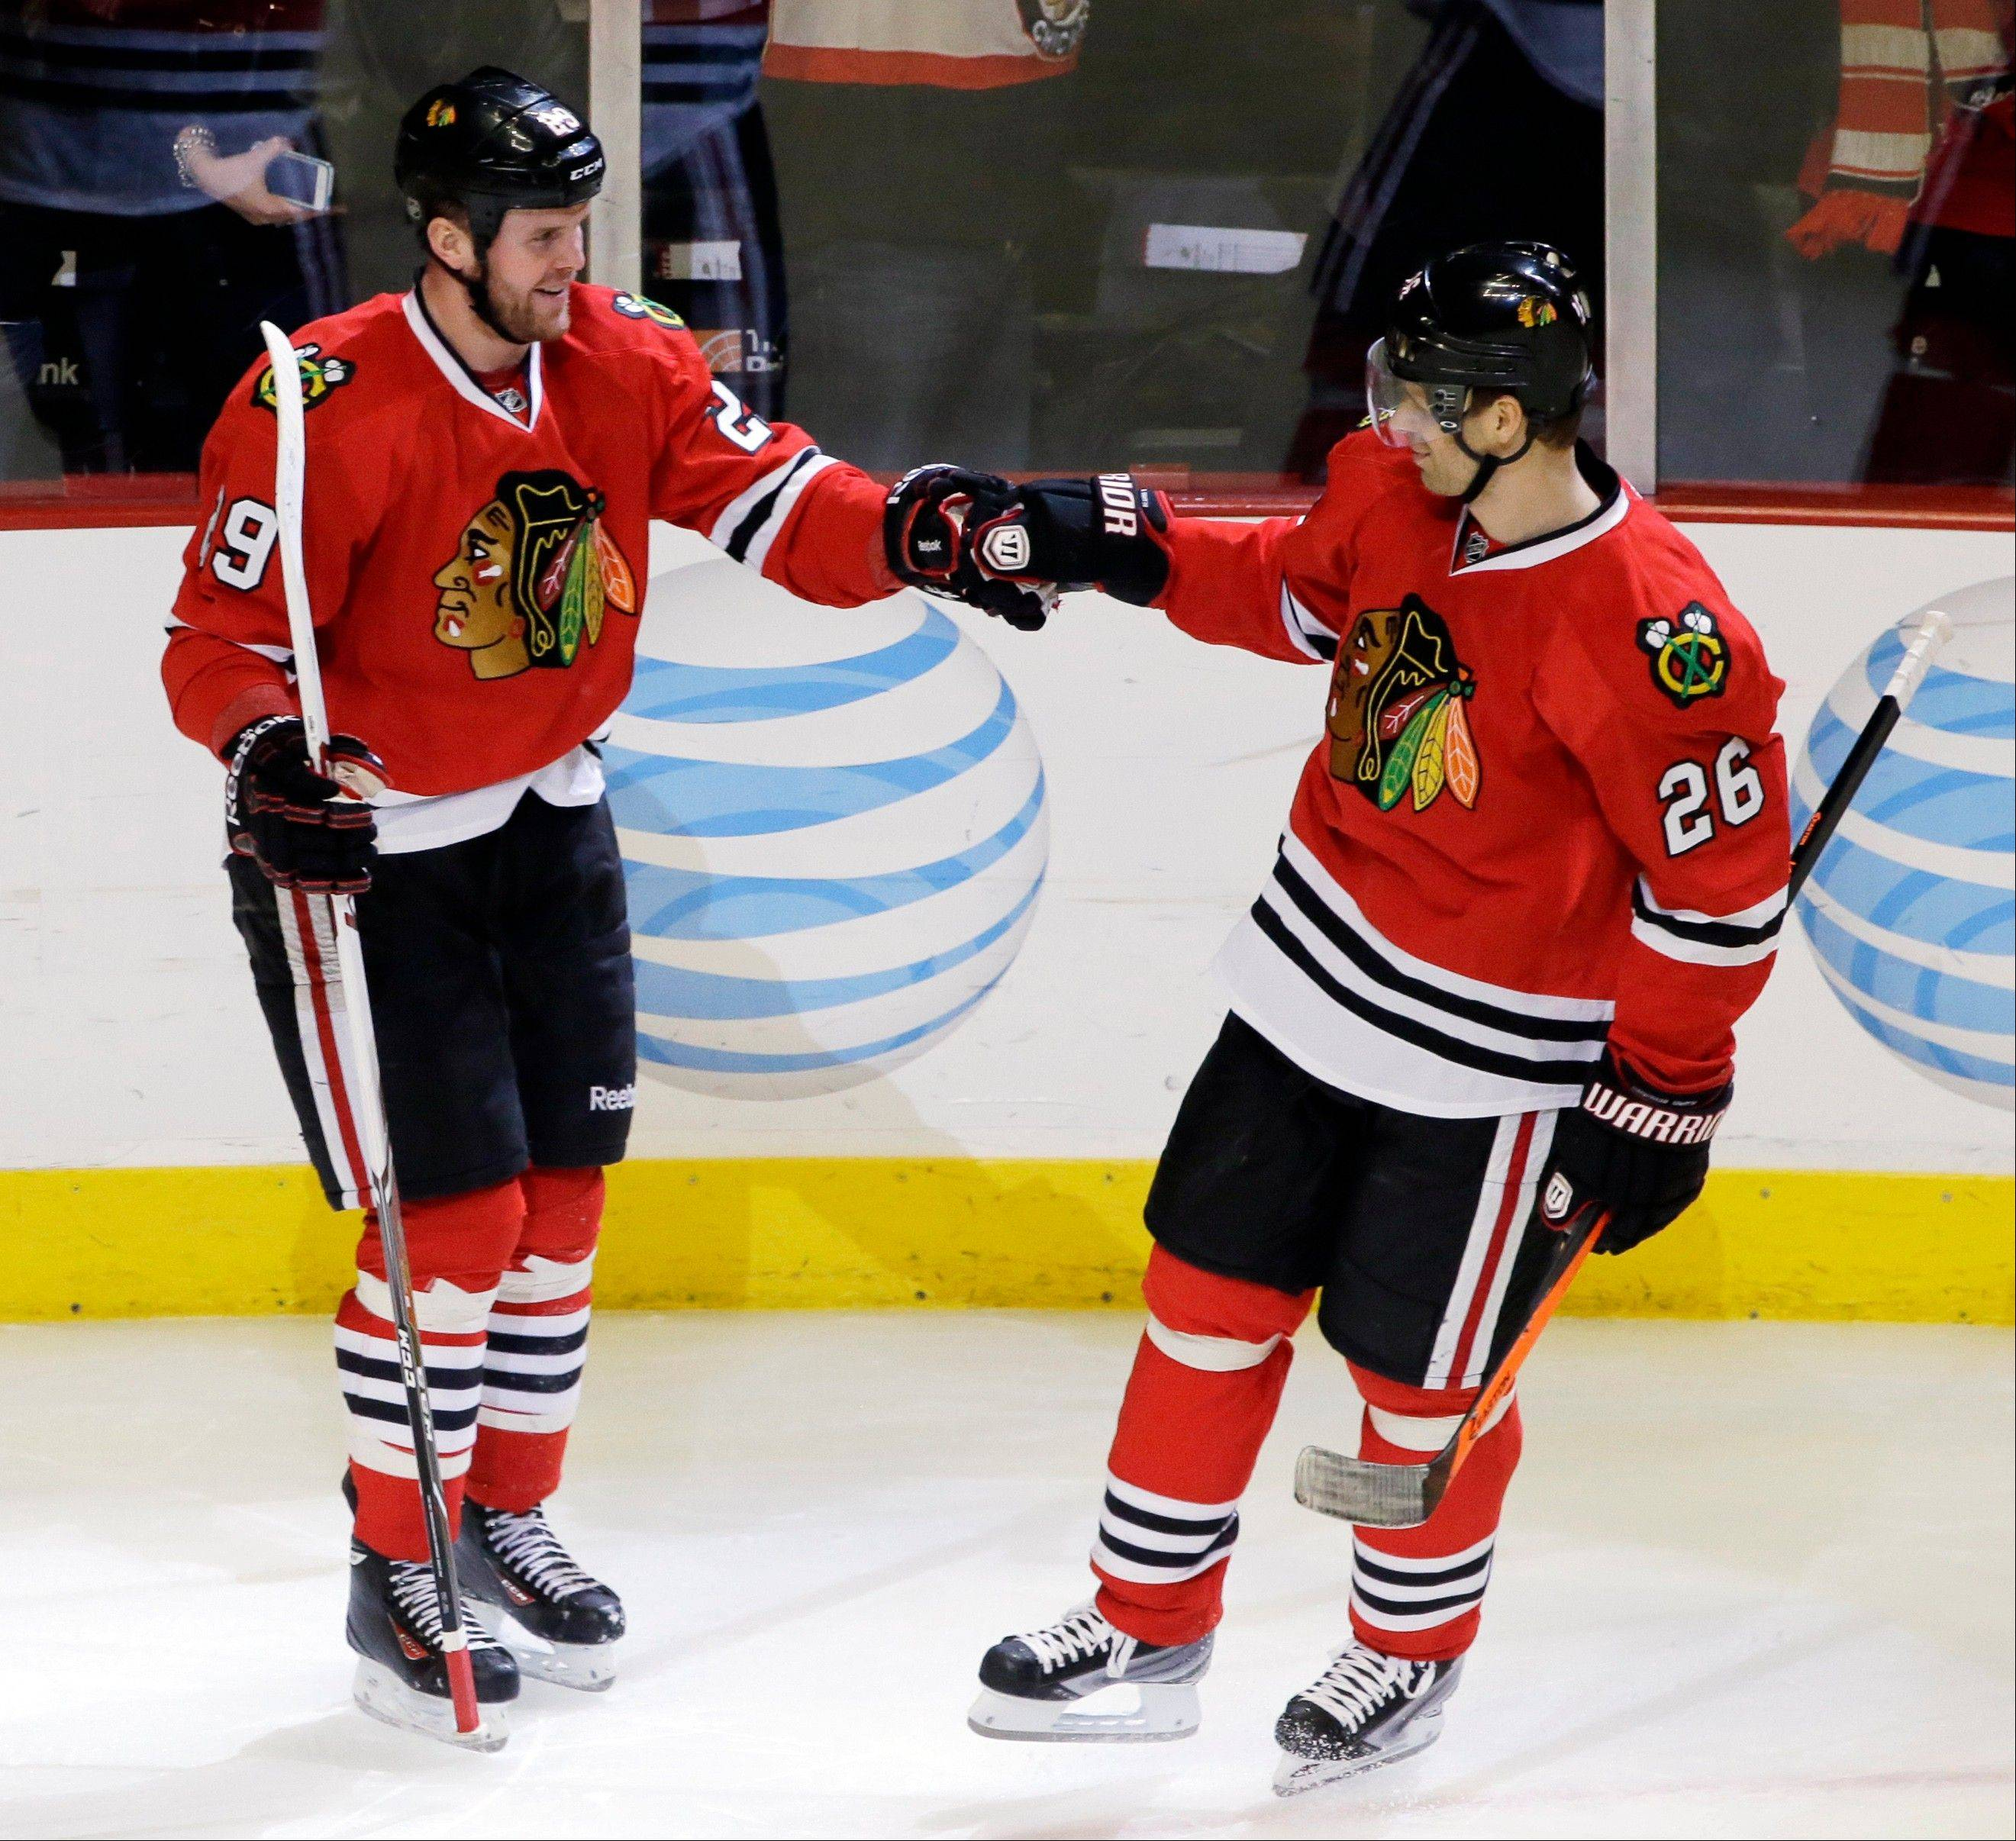 The Blackhawks' Bryan Bickell, left, celebrates with Michal Handzus after scoring against the Ducks in the third period Friday at the United Center.